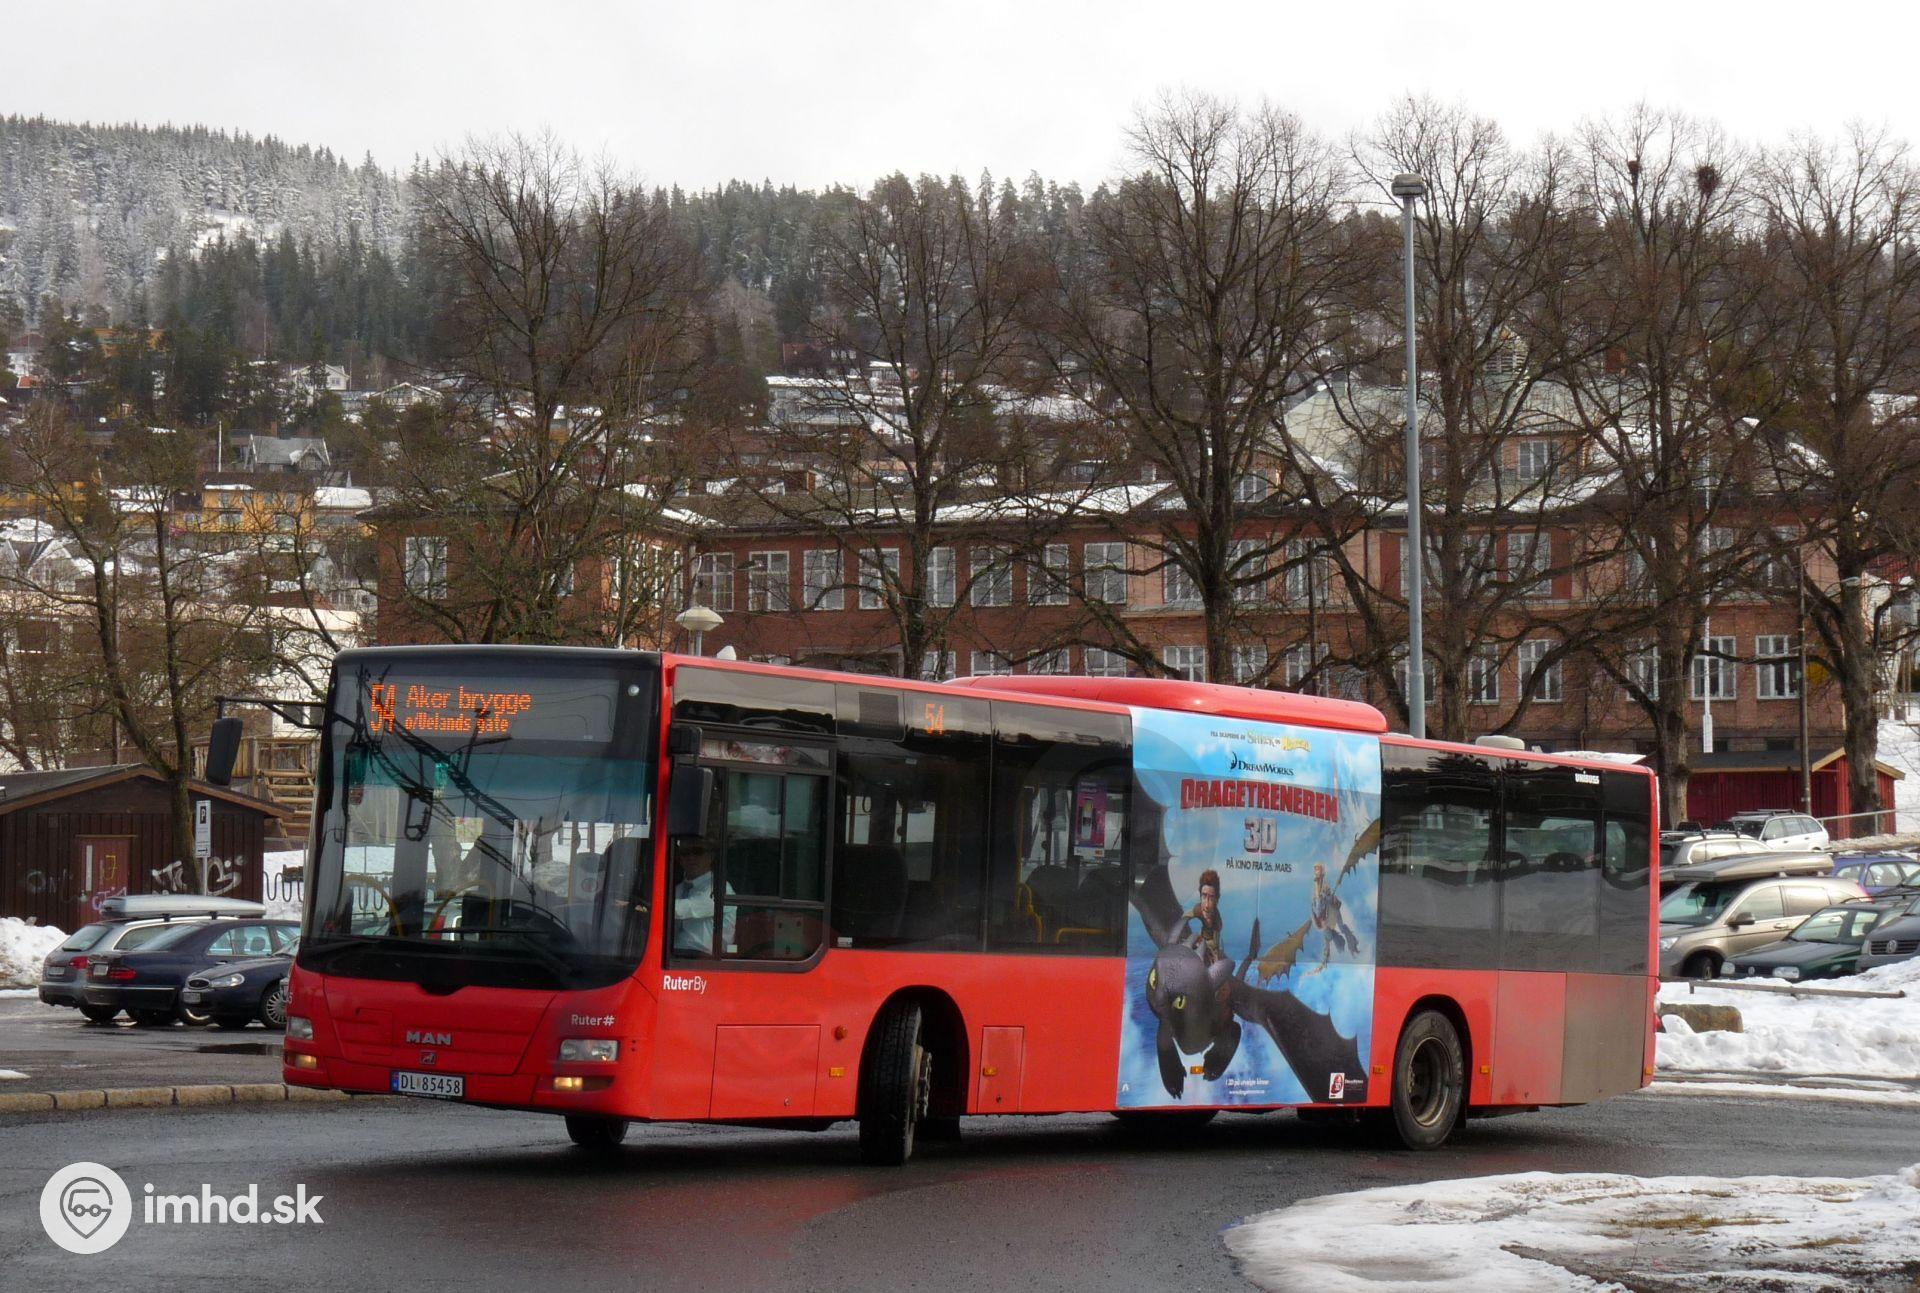 545, route 54, Kjelsås • imhd sk Slovakia and the world